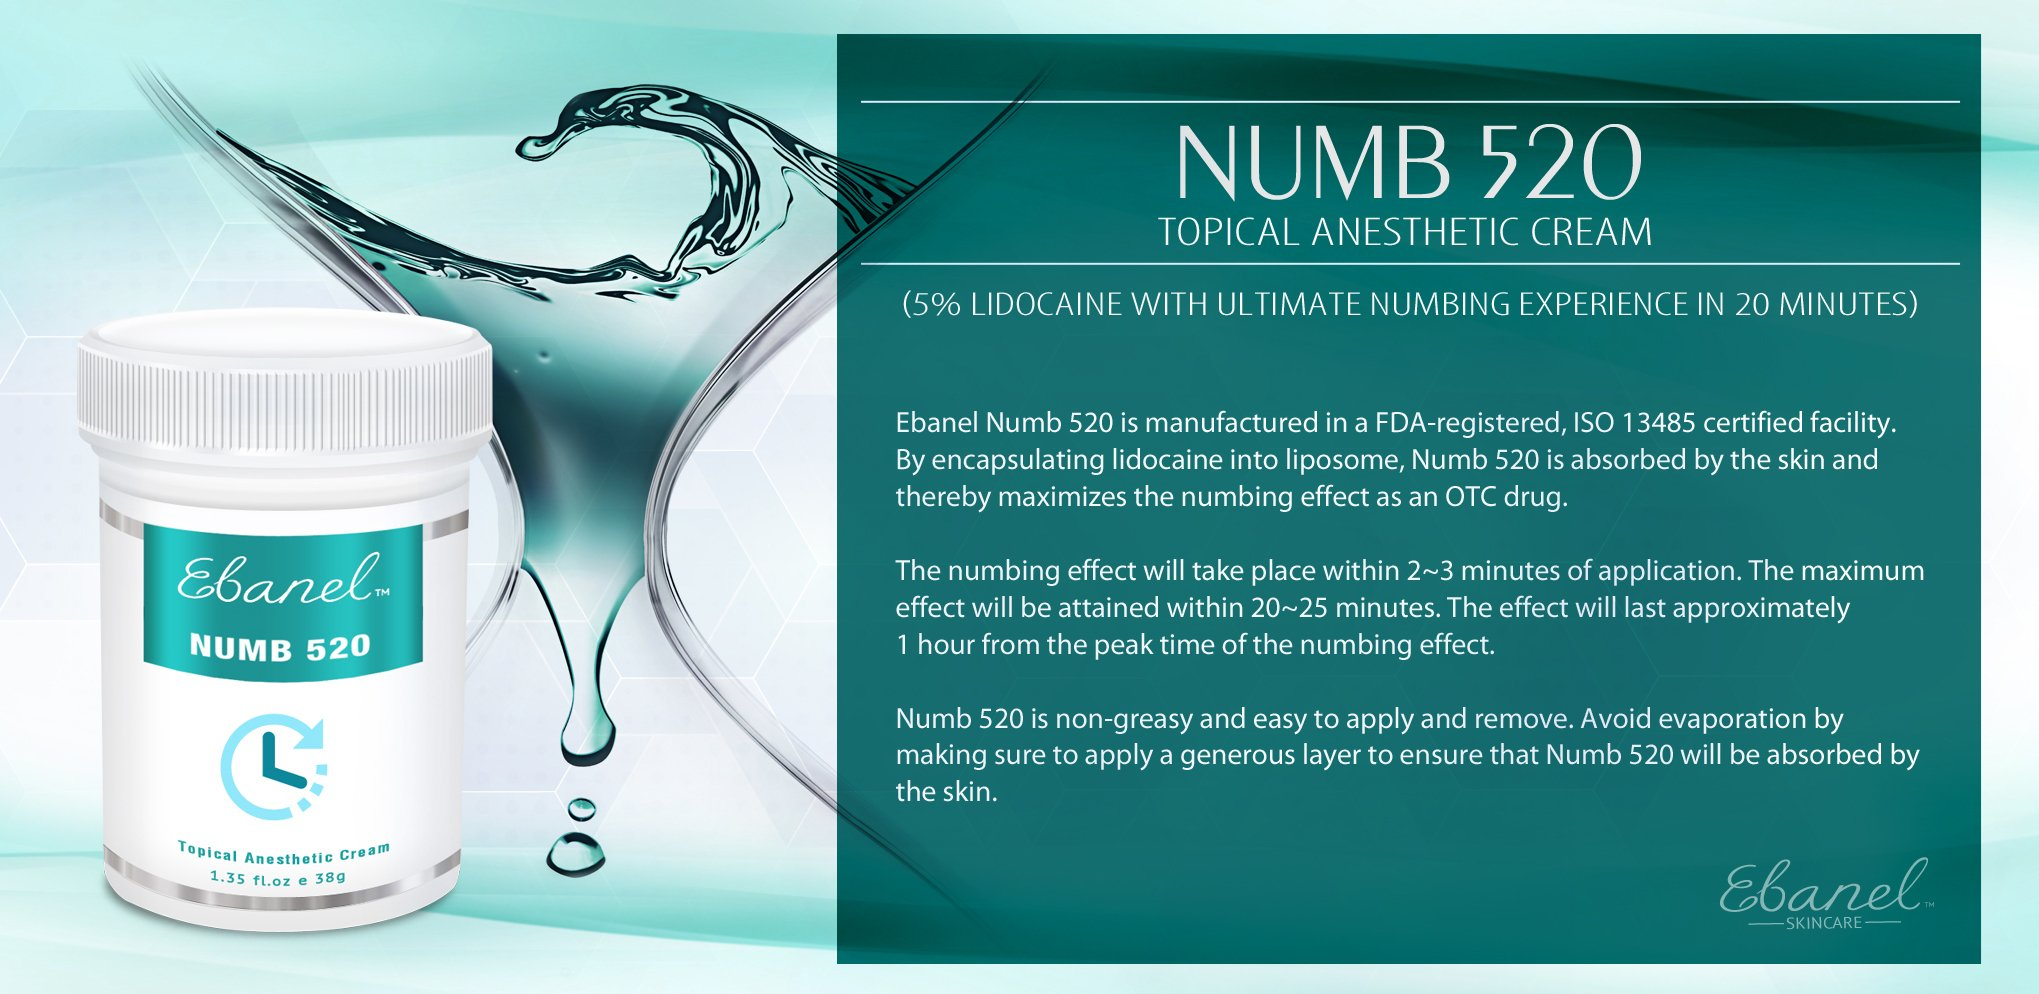 Numb 520 (1.35oz / 38g) 5% Lidocaine, Liposomal Technology for Deeper Penetration, Topical Numbing Cream, Local and Anorectal Discomfort